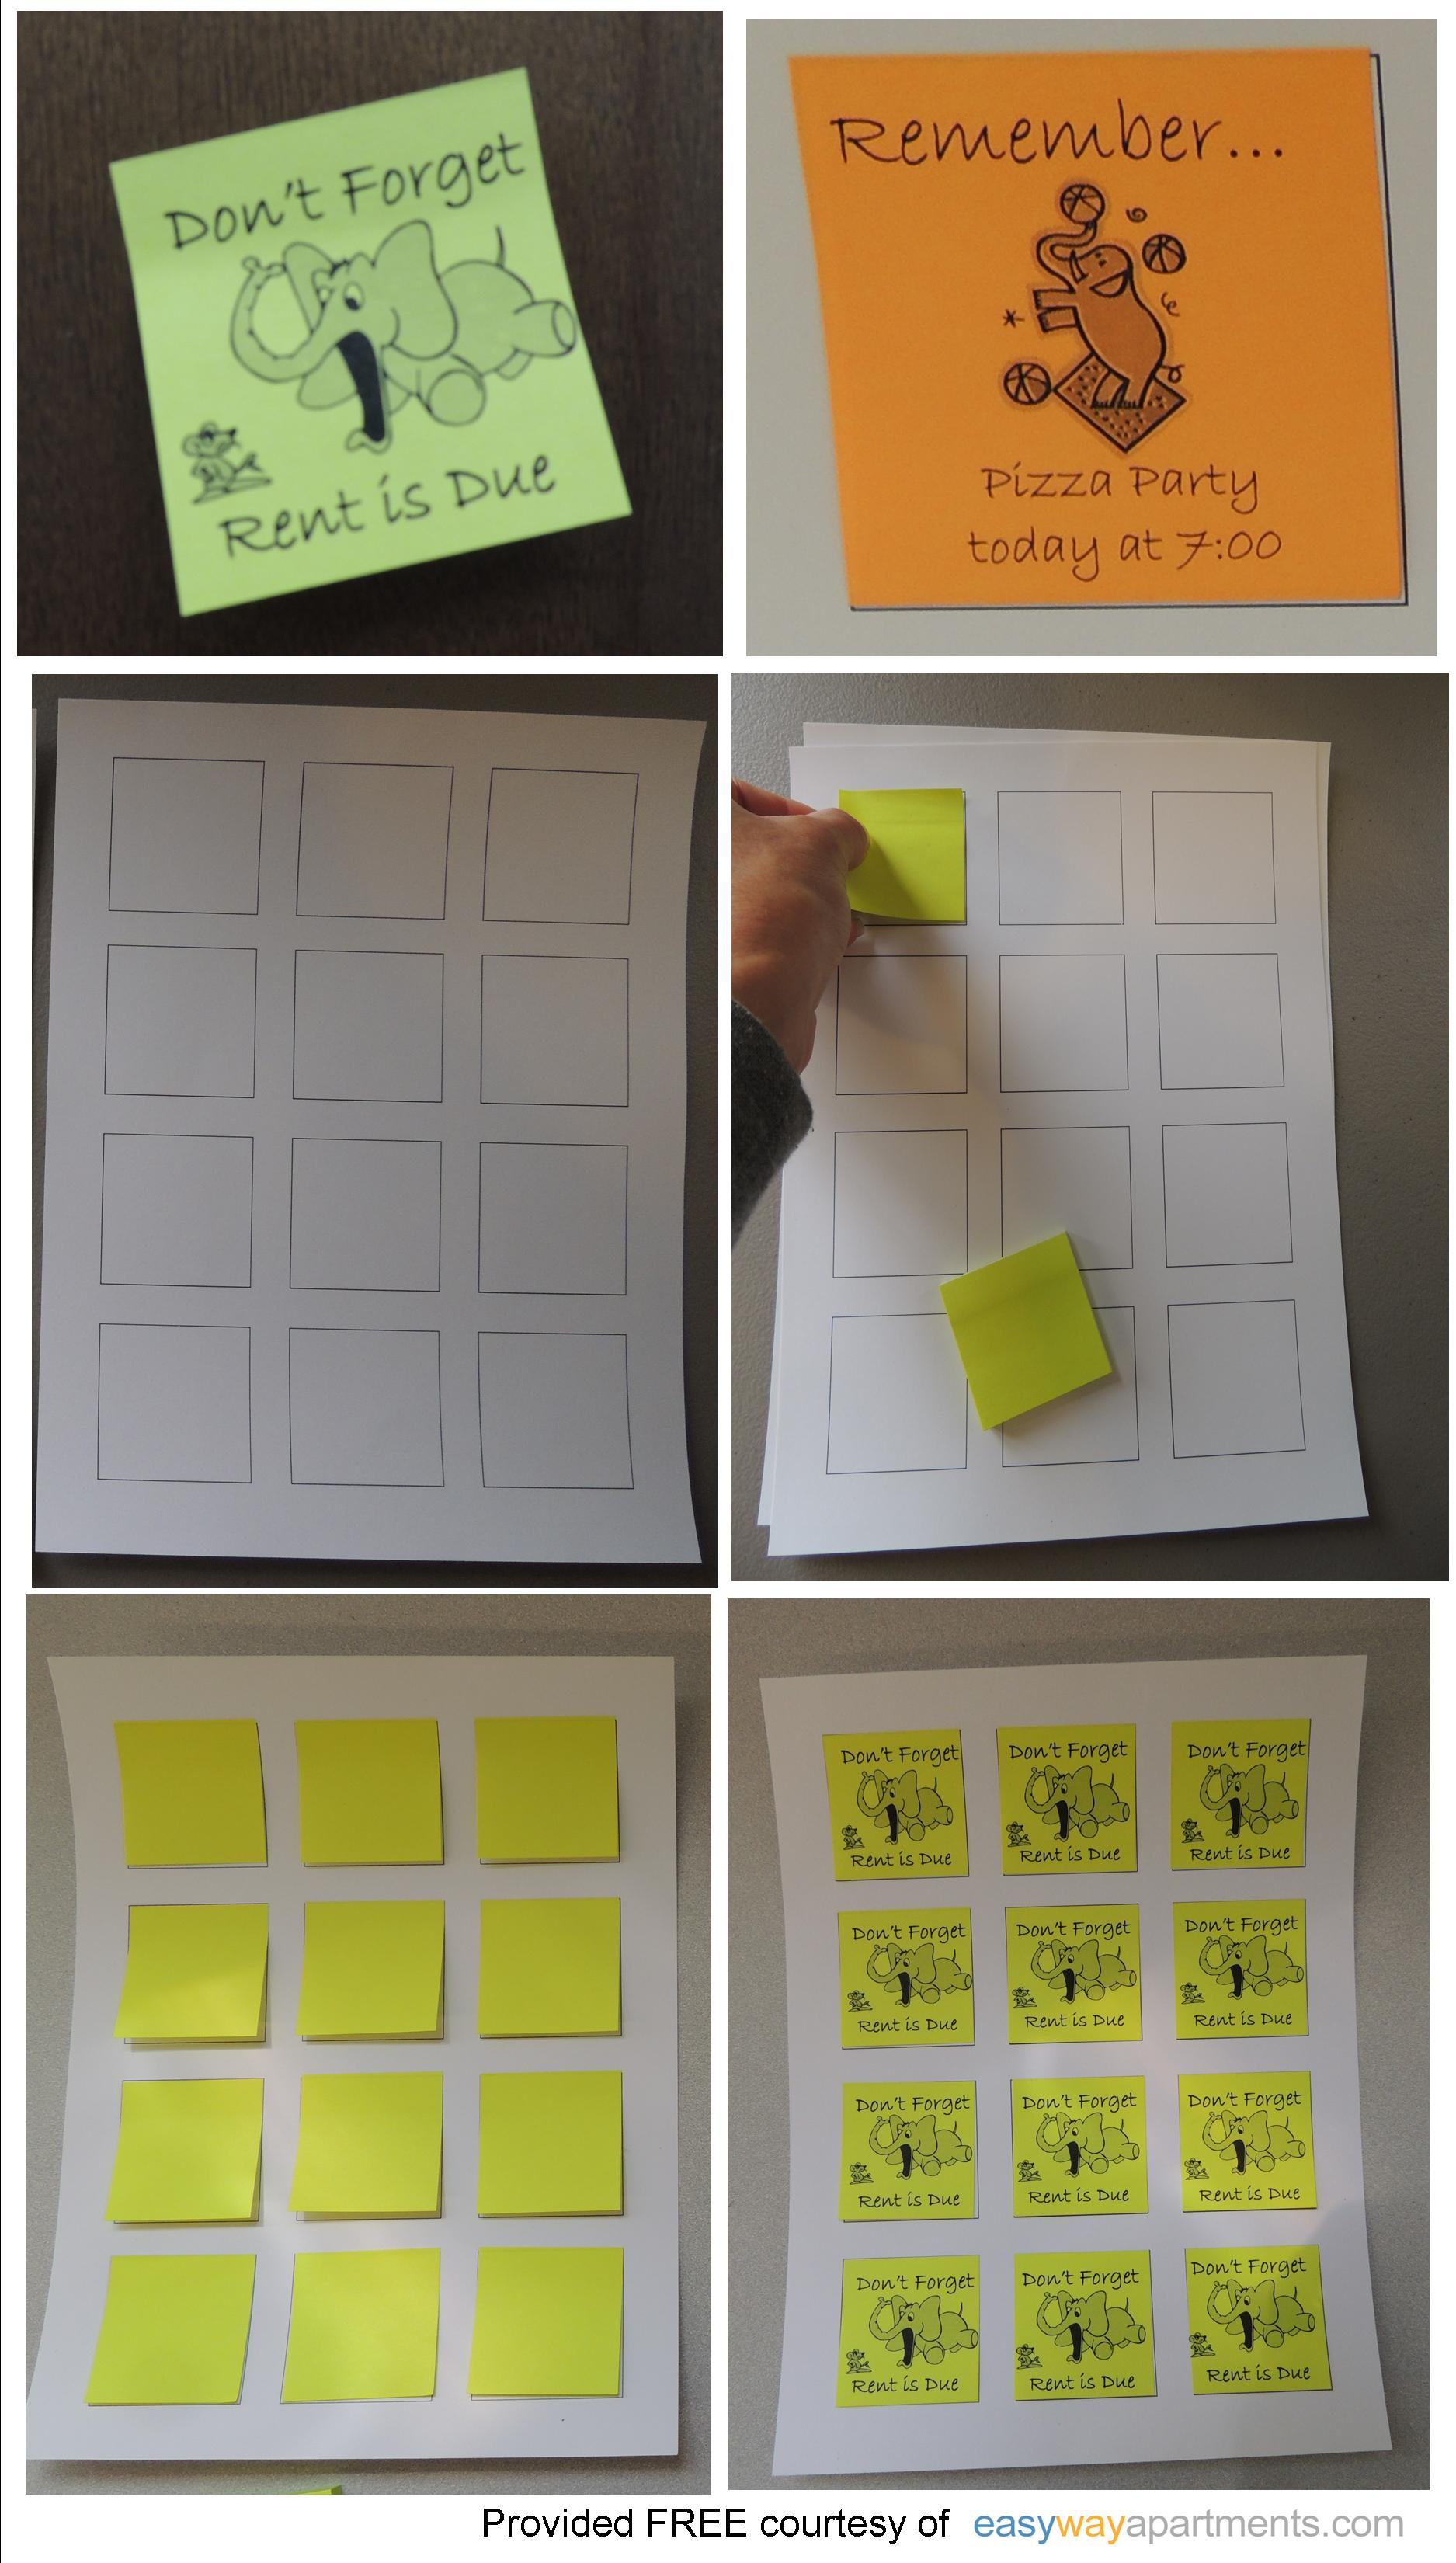 It is a graphic of Printable Postit Notes within printed